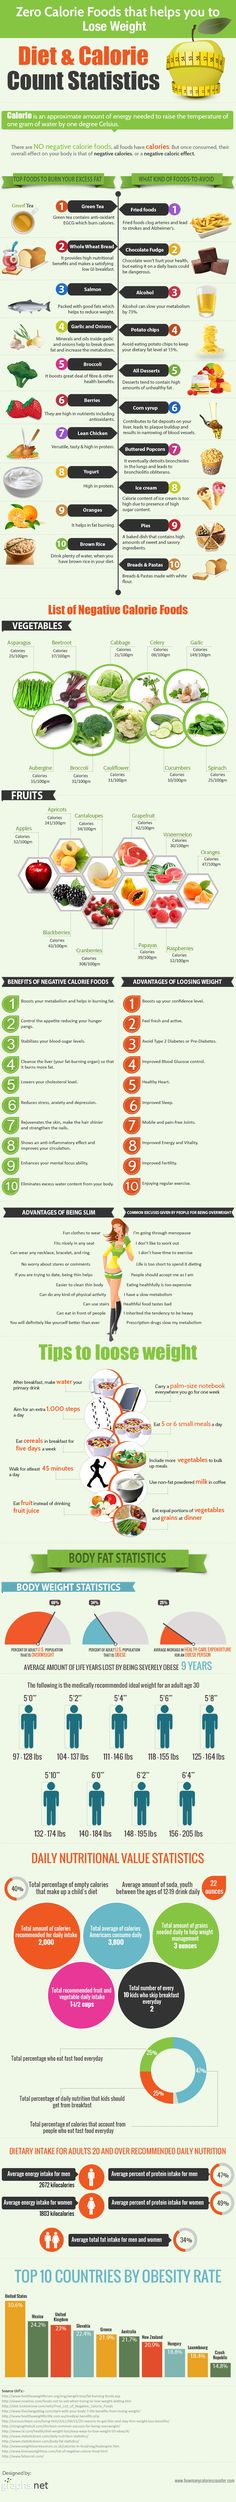 I need to start working on this kind of stuff #loseweight #howtoloseweight #loseweightfast #loseweightnow learn what Dr. Oz Promotes for Weight Loss Click here now http://yourworkingdiet.com/forskolin